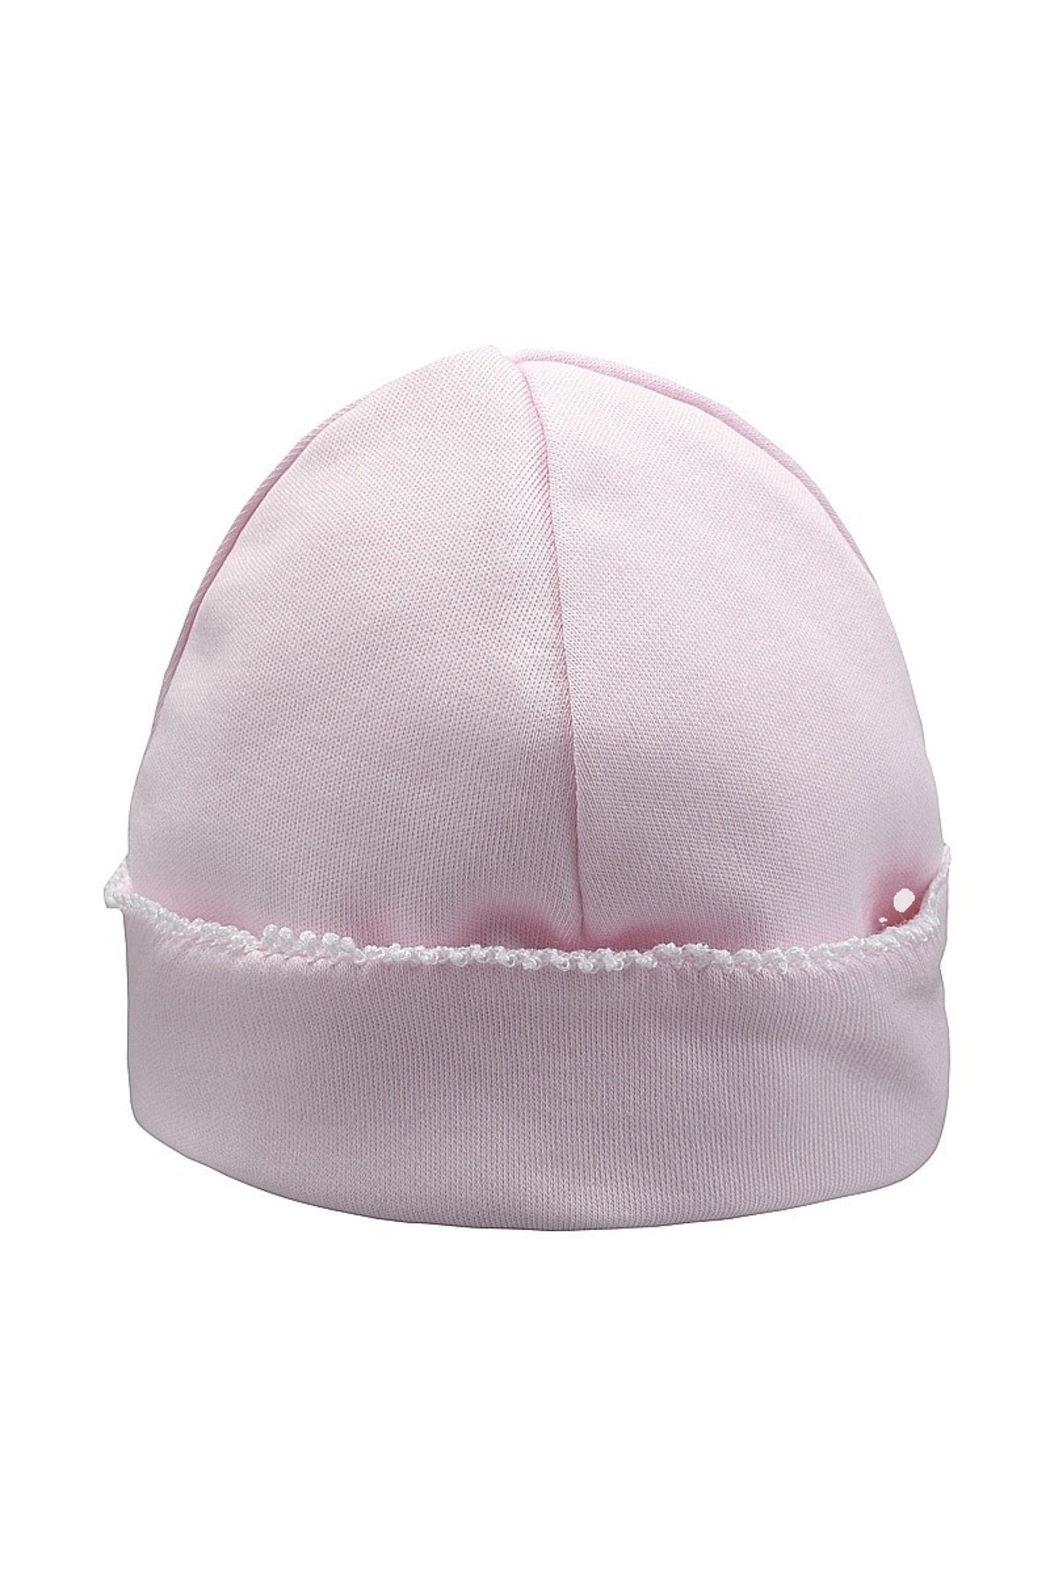 Laranjinha Antibacterial Cotton Hat |  | Perfect Baby Shower Gift - Front Cropped Image